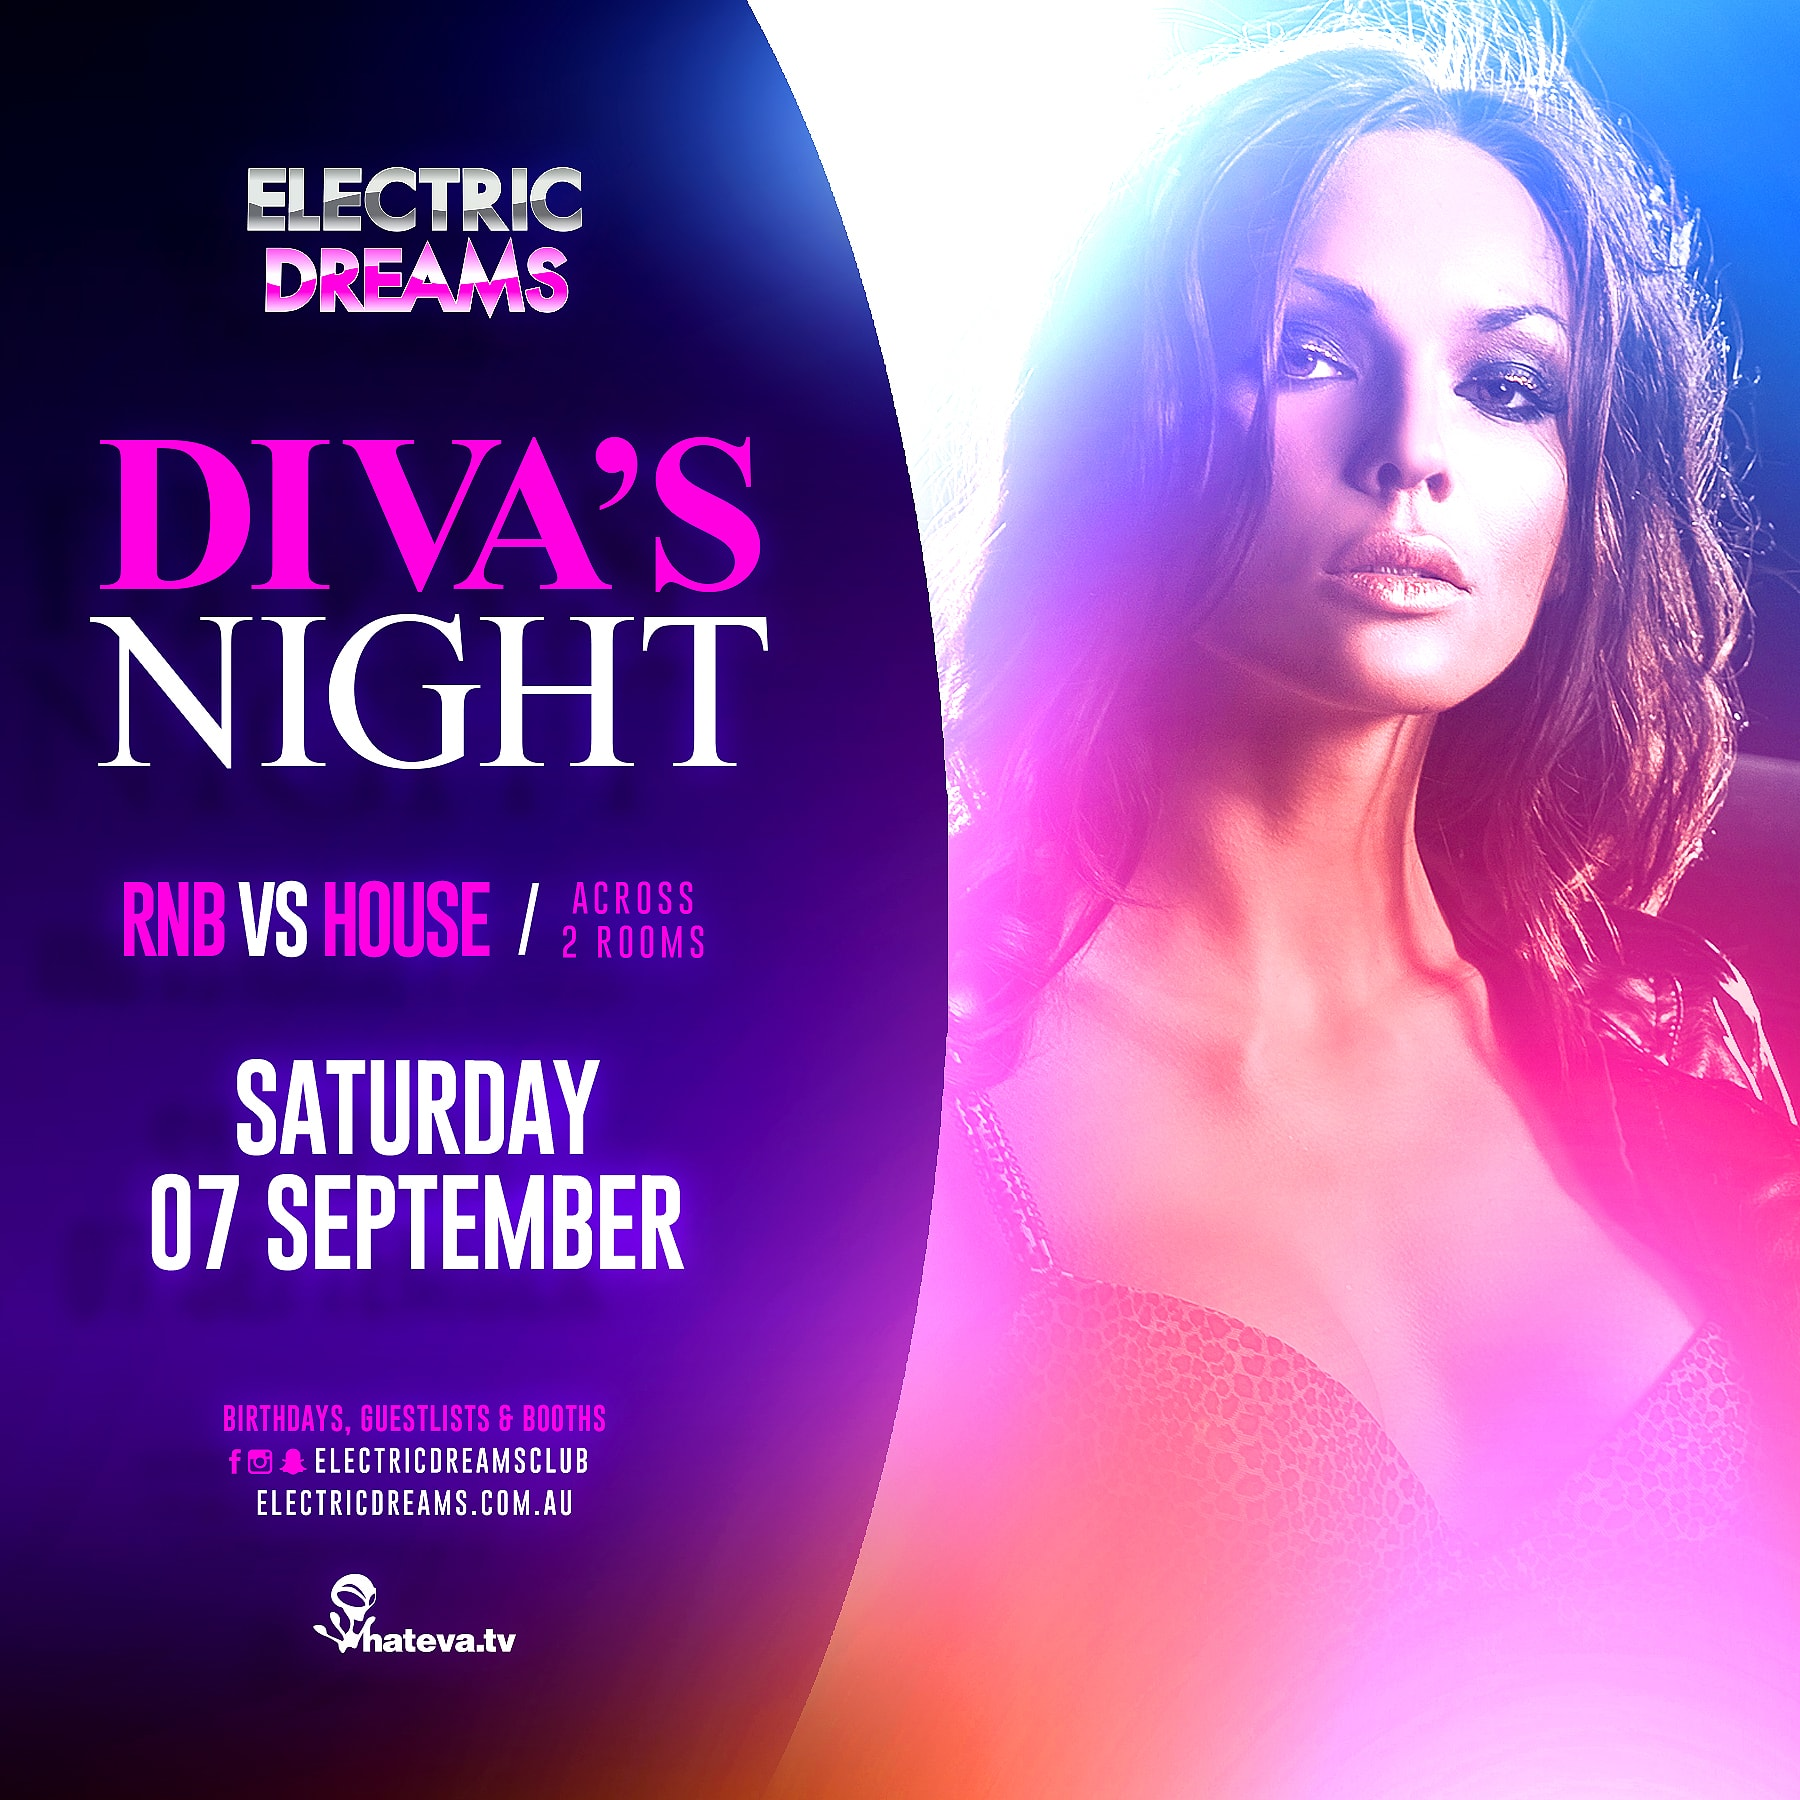 ED_September-07_Divas-Night_V1-min.jpg